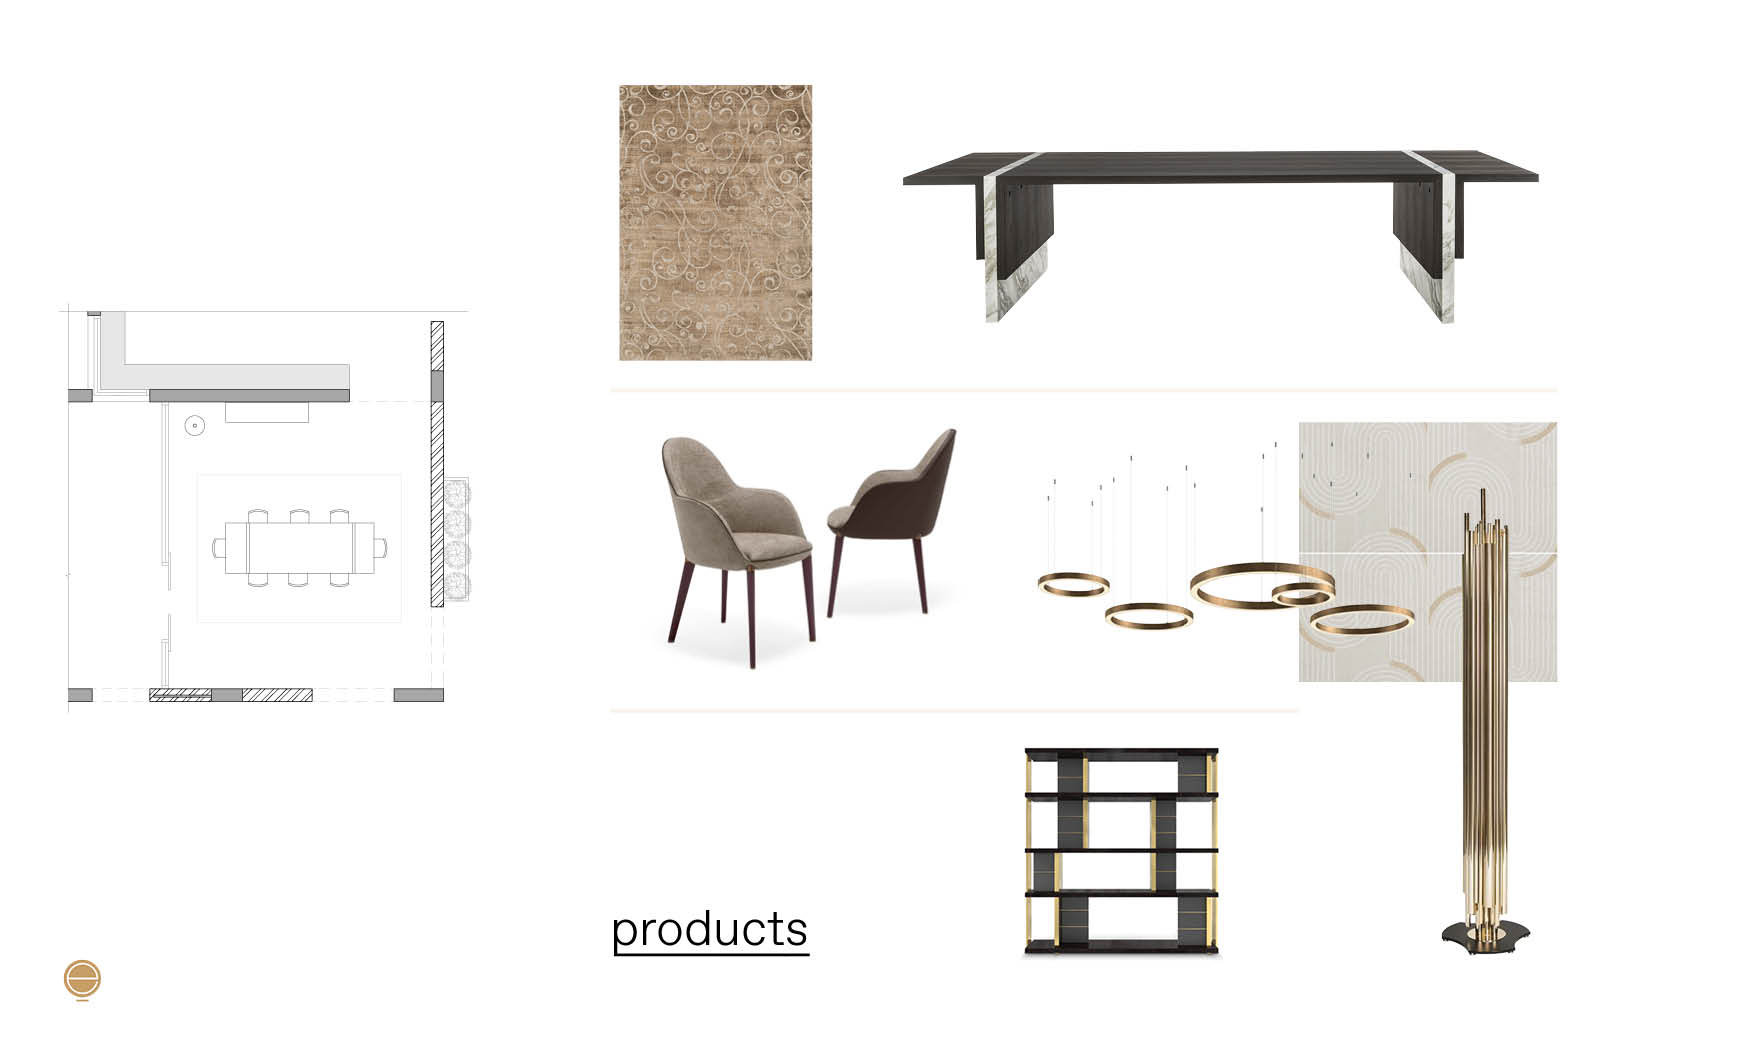 luxury dining room furniture moodboad and high end products composition made by Esperiri